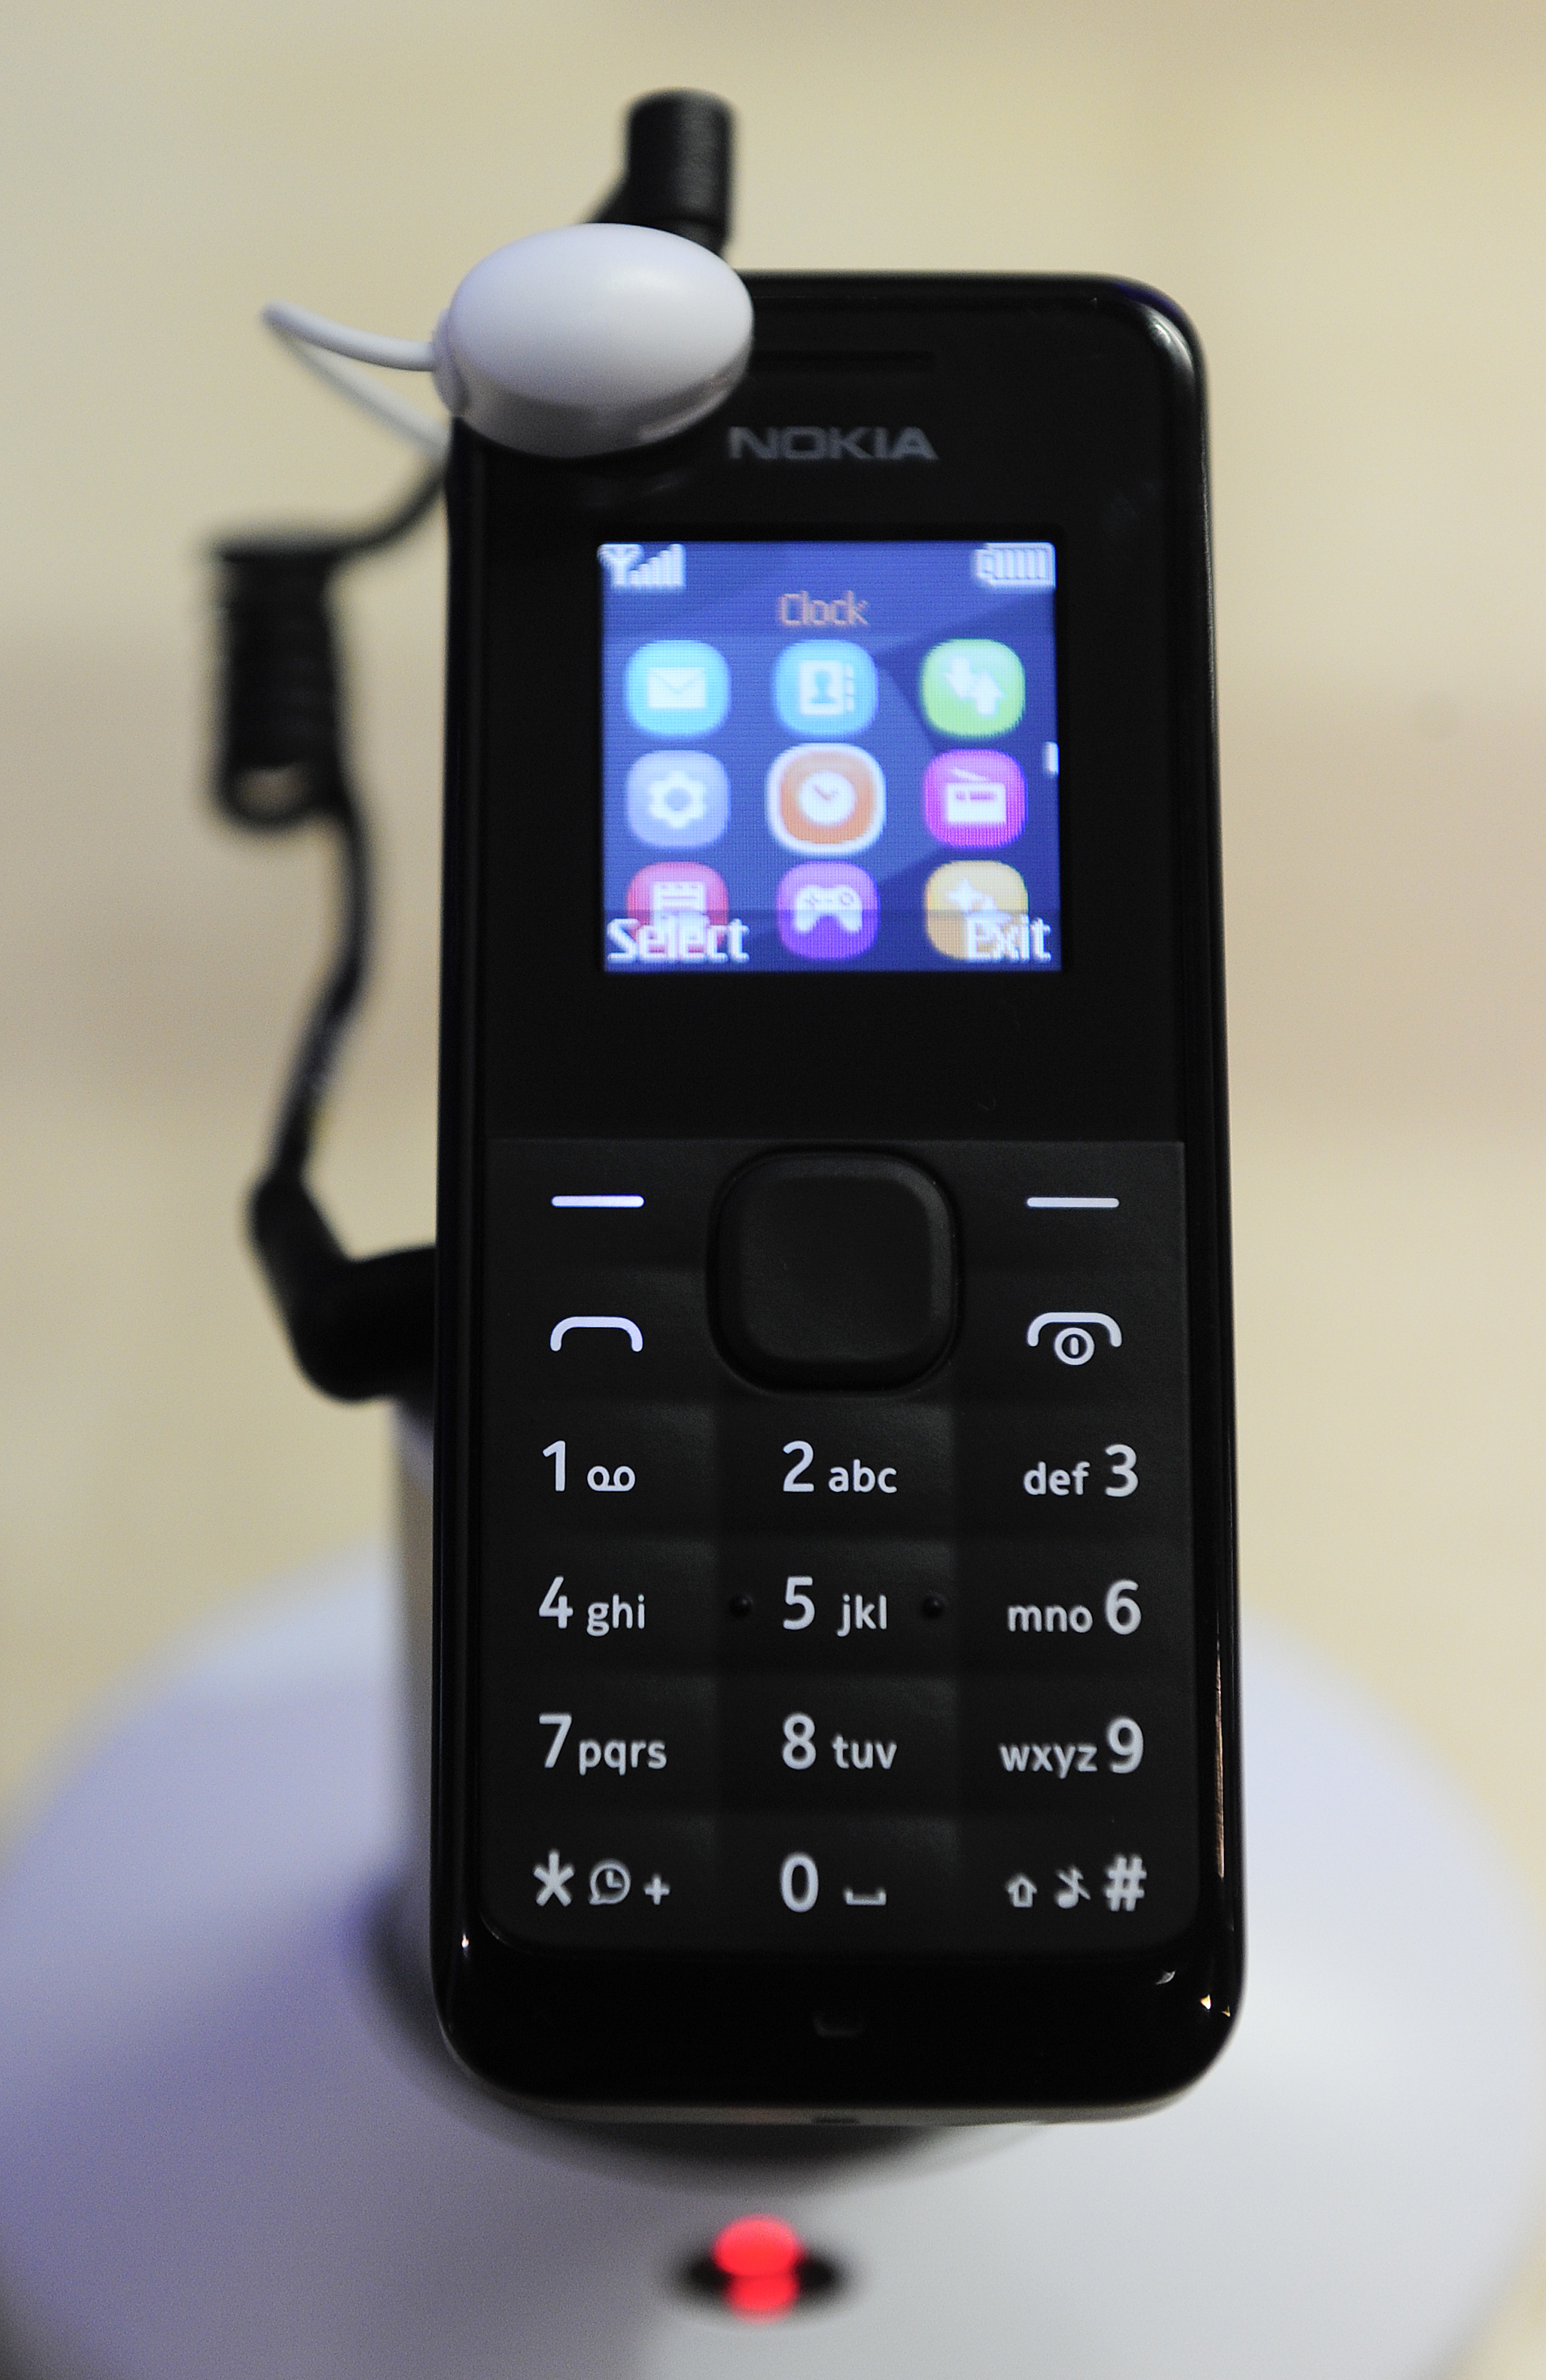 The  Nokia 105  mobile phone by Nokia.